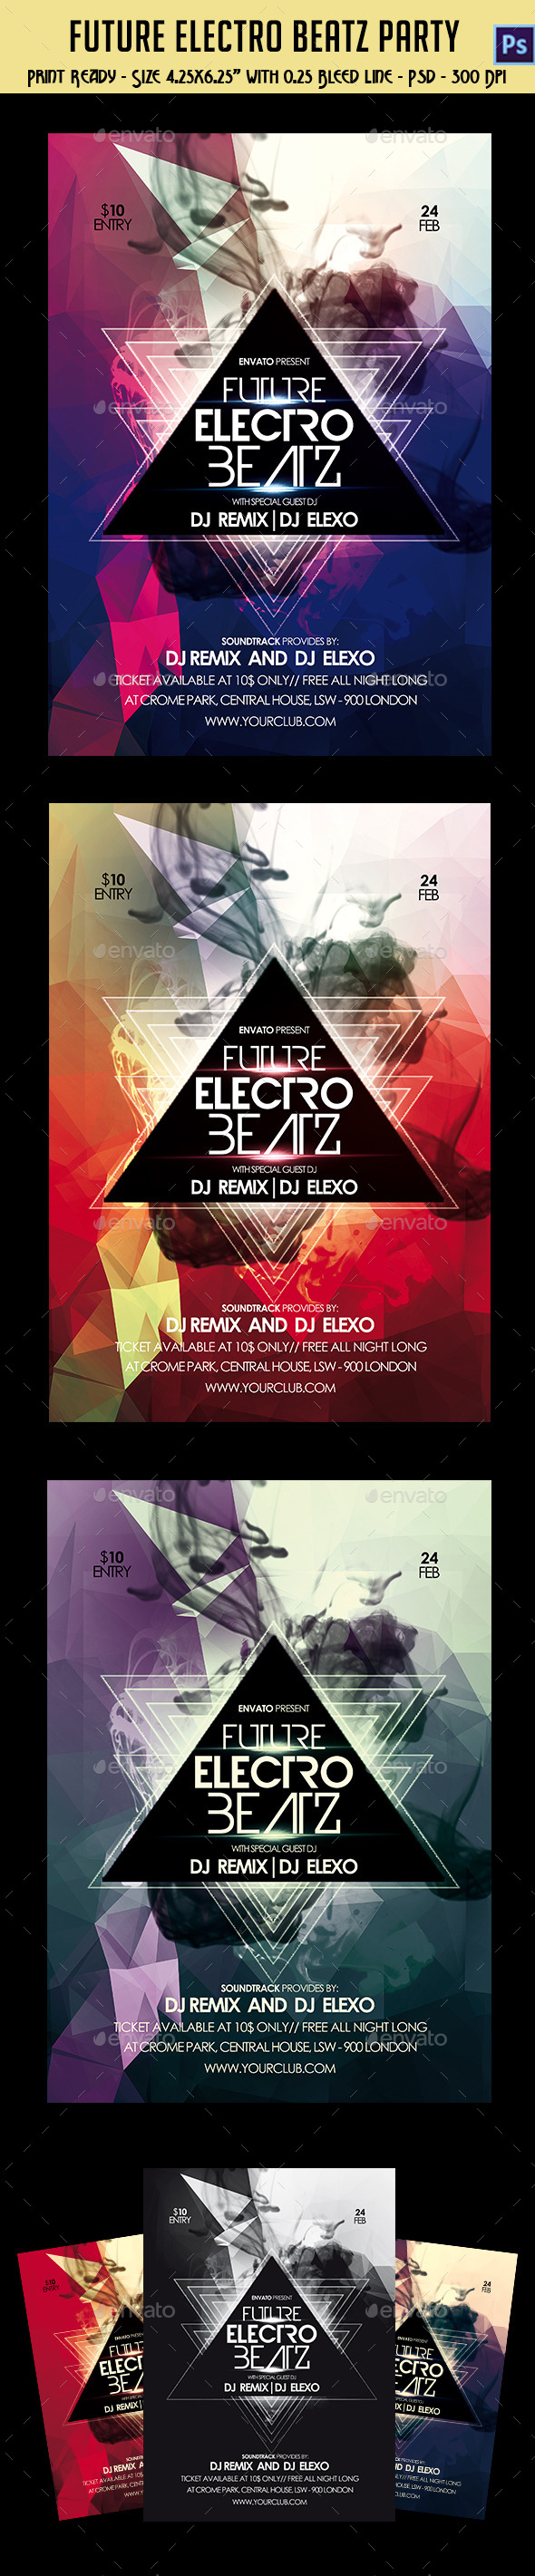 GraphicRiver Future Electro Beatz Party Flyer 10525764